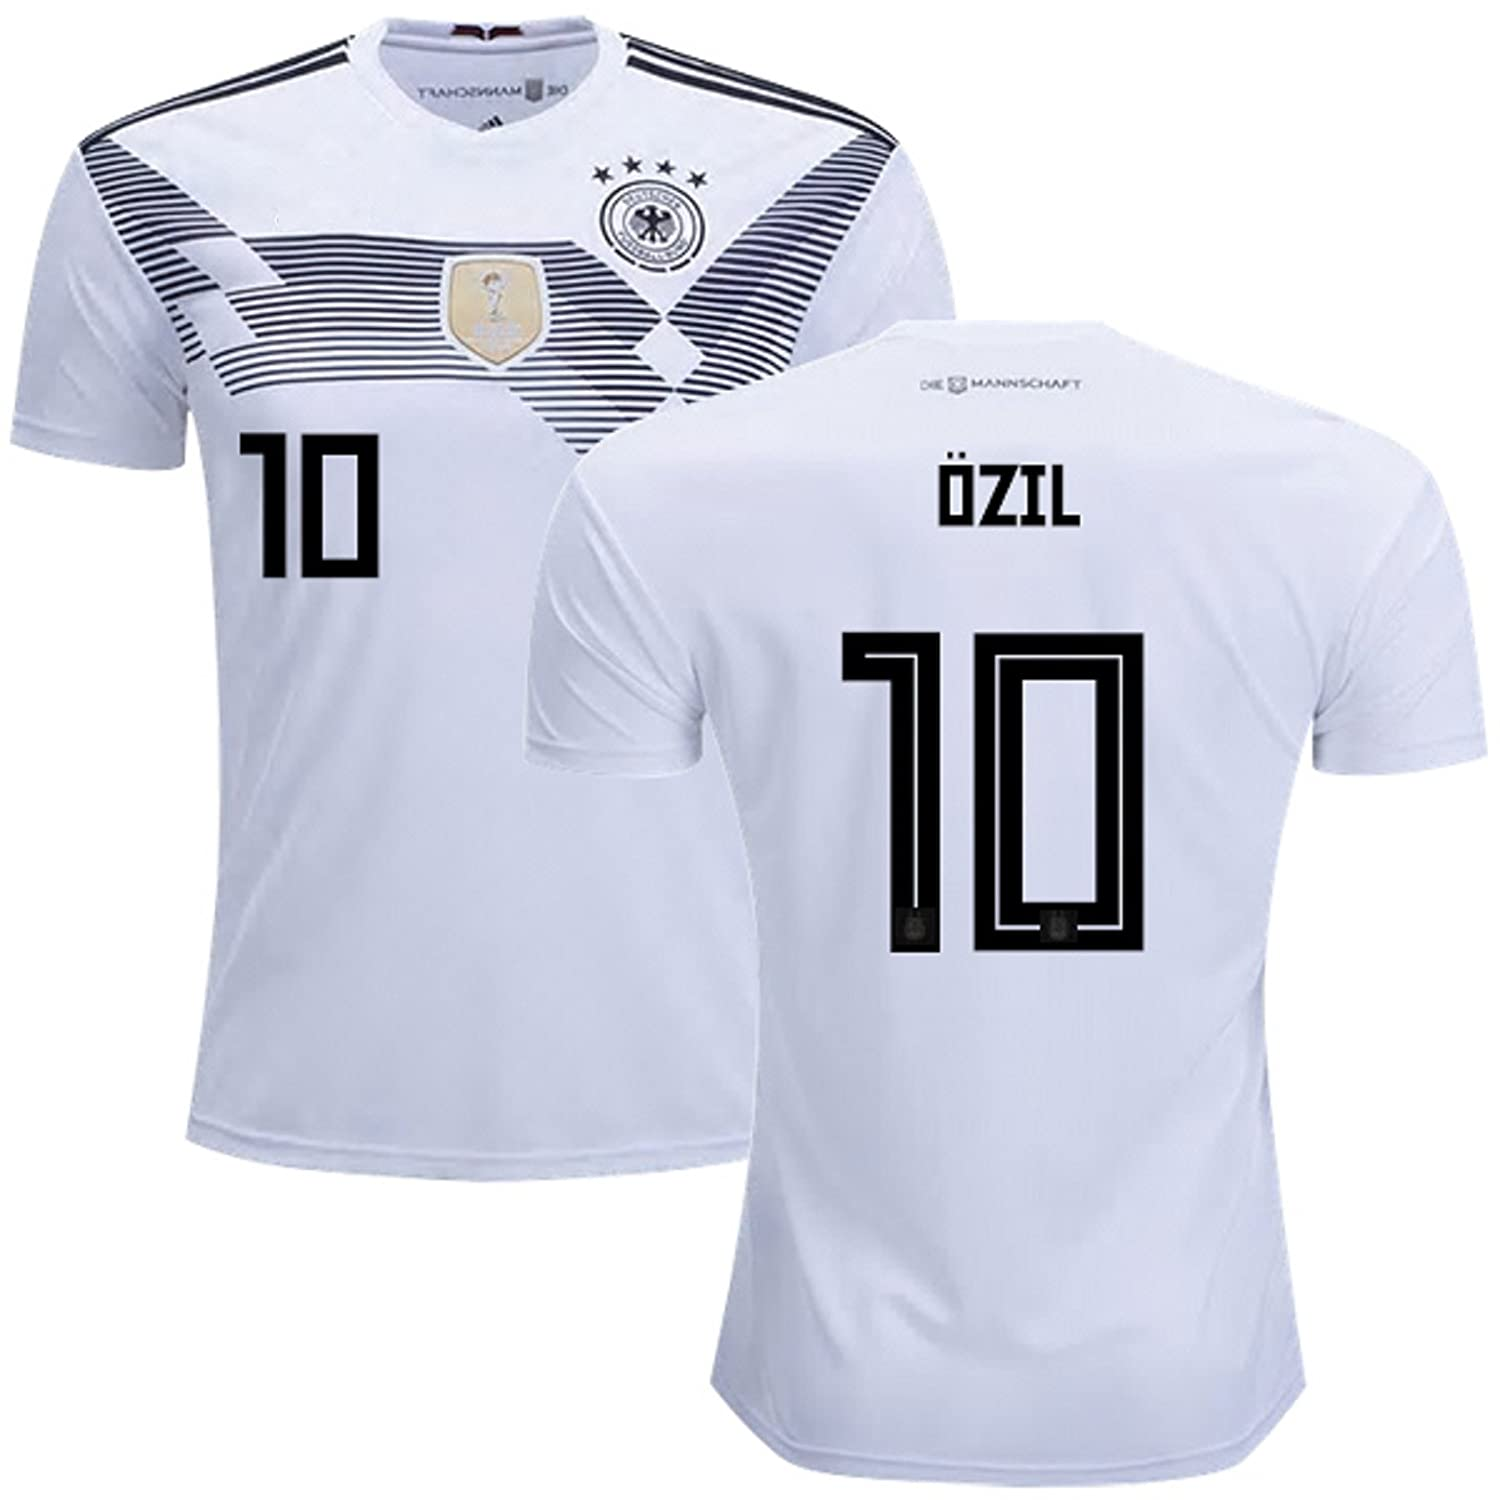 watch 06f16 5bff8 Ozil #10 Germany Soccer Jersey Youth World Cup Home Short Sleeve with  Shorts Kit Kids Soccer Set